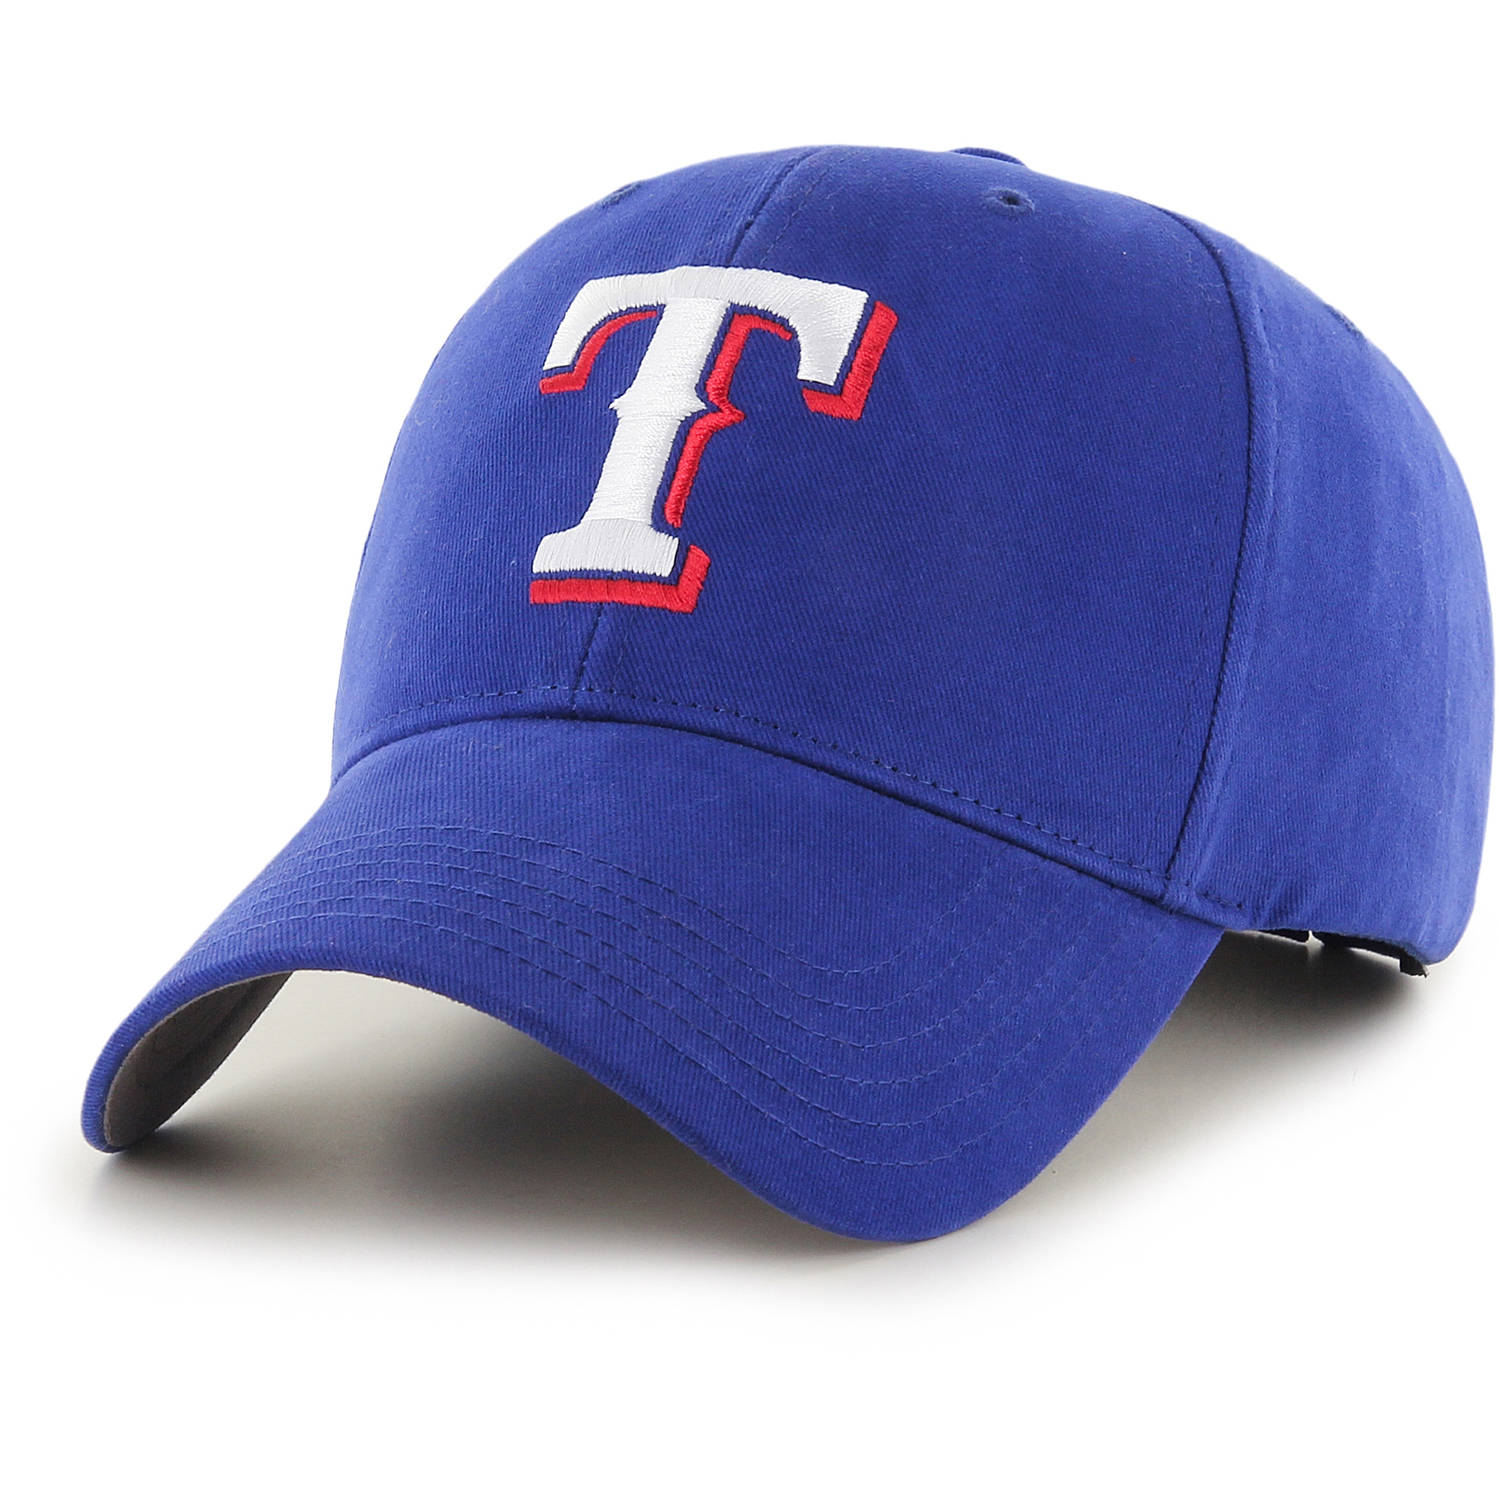 MLB Texas Rangers Basic Youth Adjustable Cap/Hat by Fan Favorite